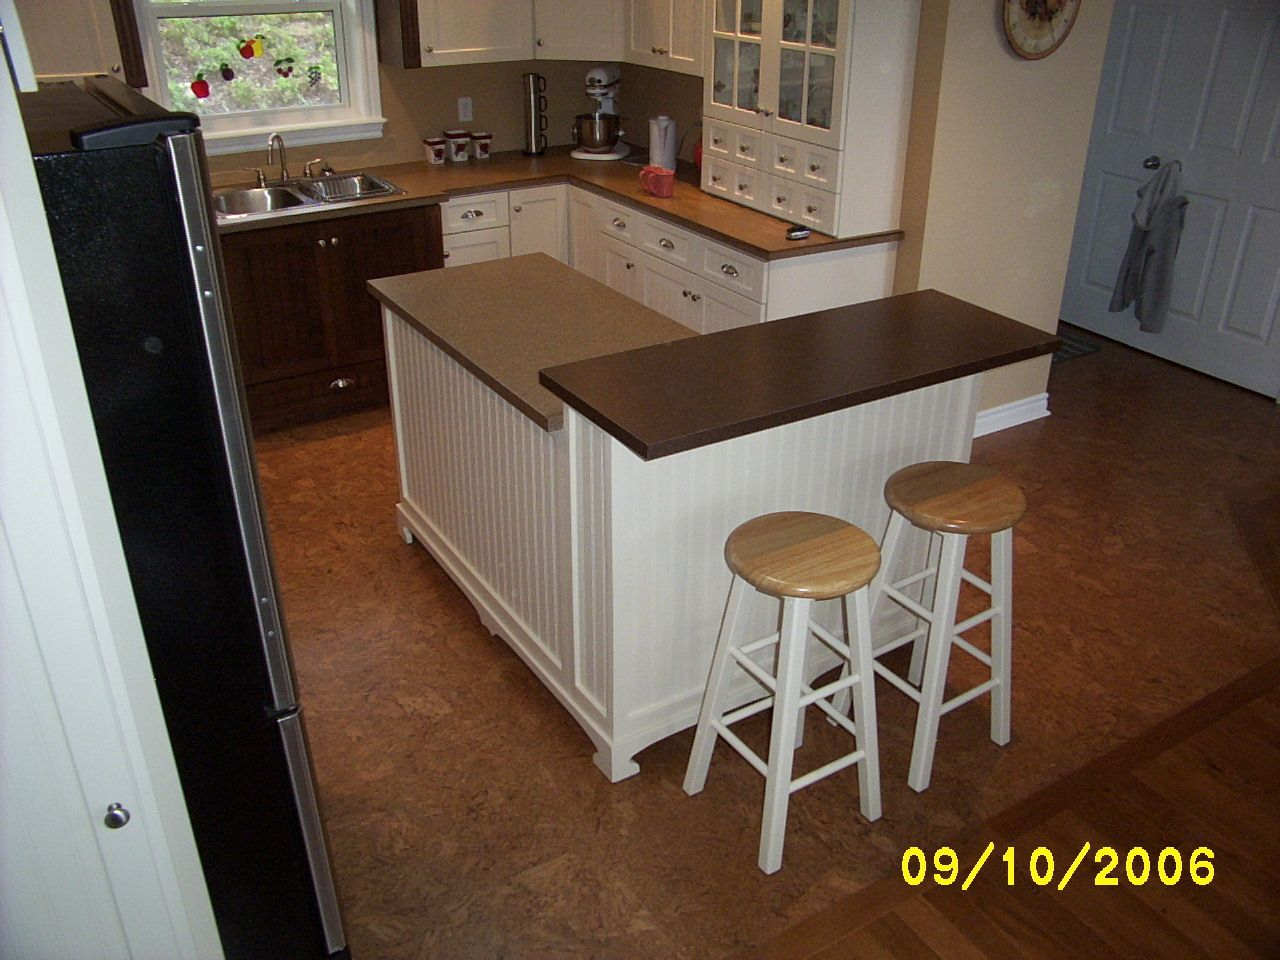 Diy Kitchen Island seating diy with kitchen island ~ homemade kitchen island: diy